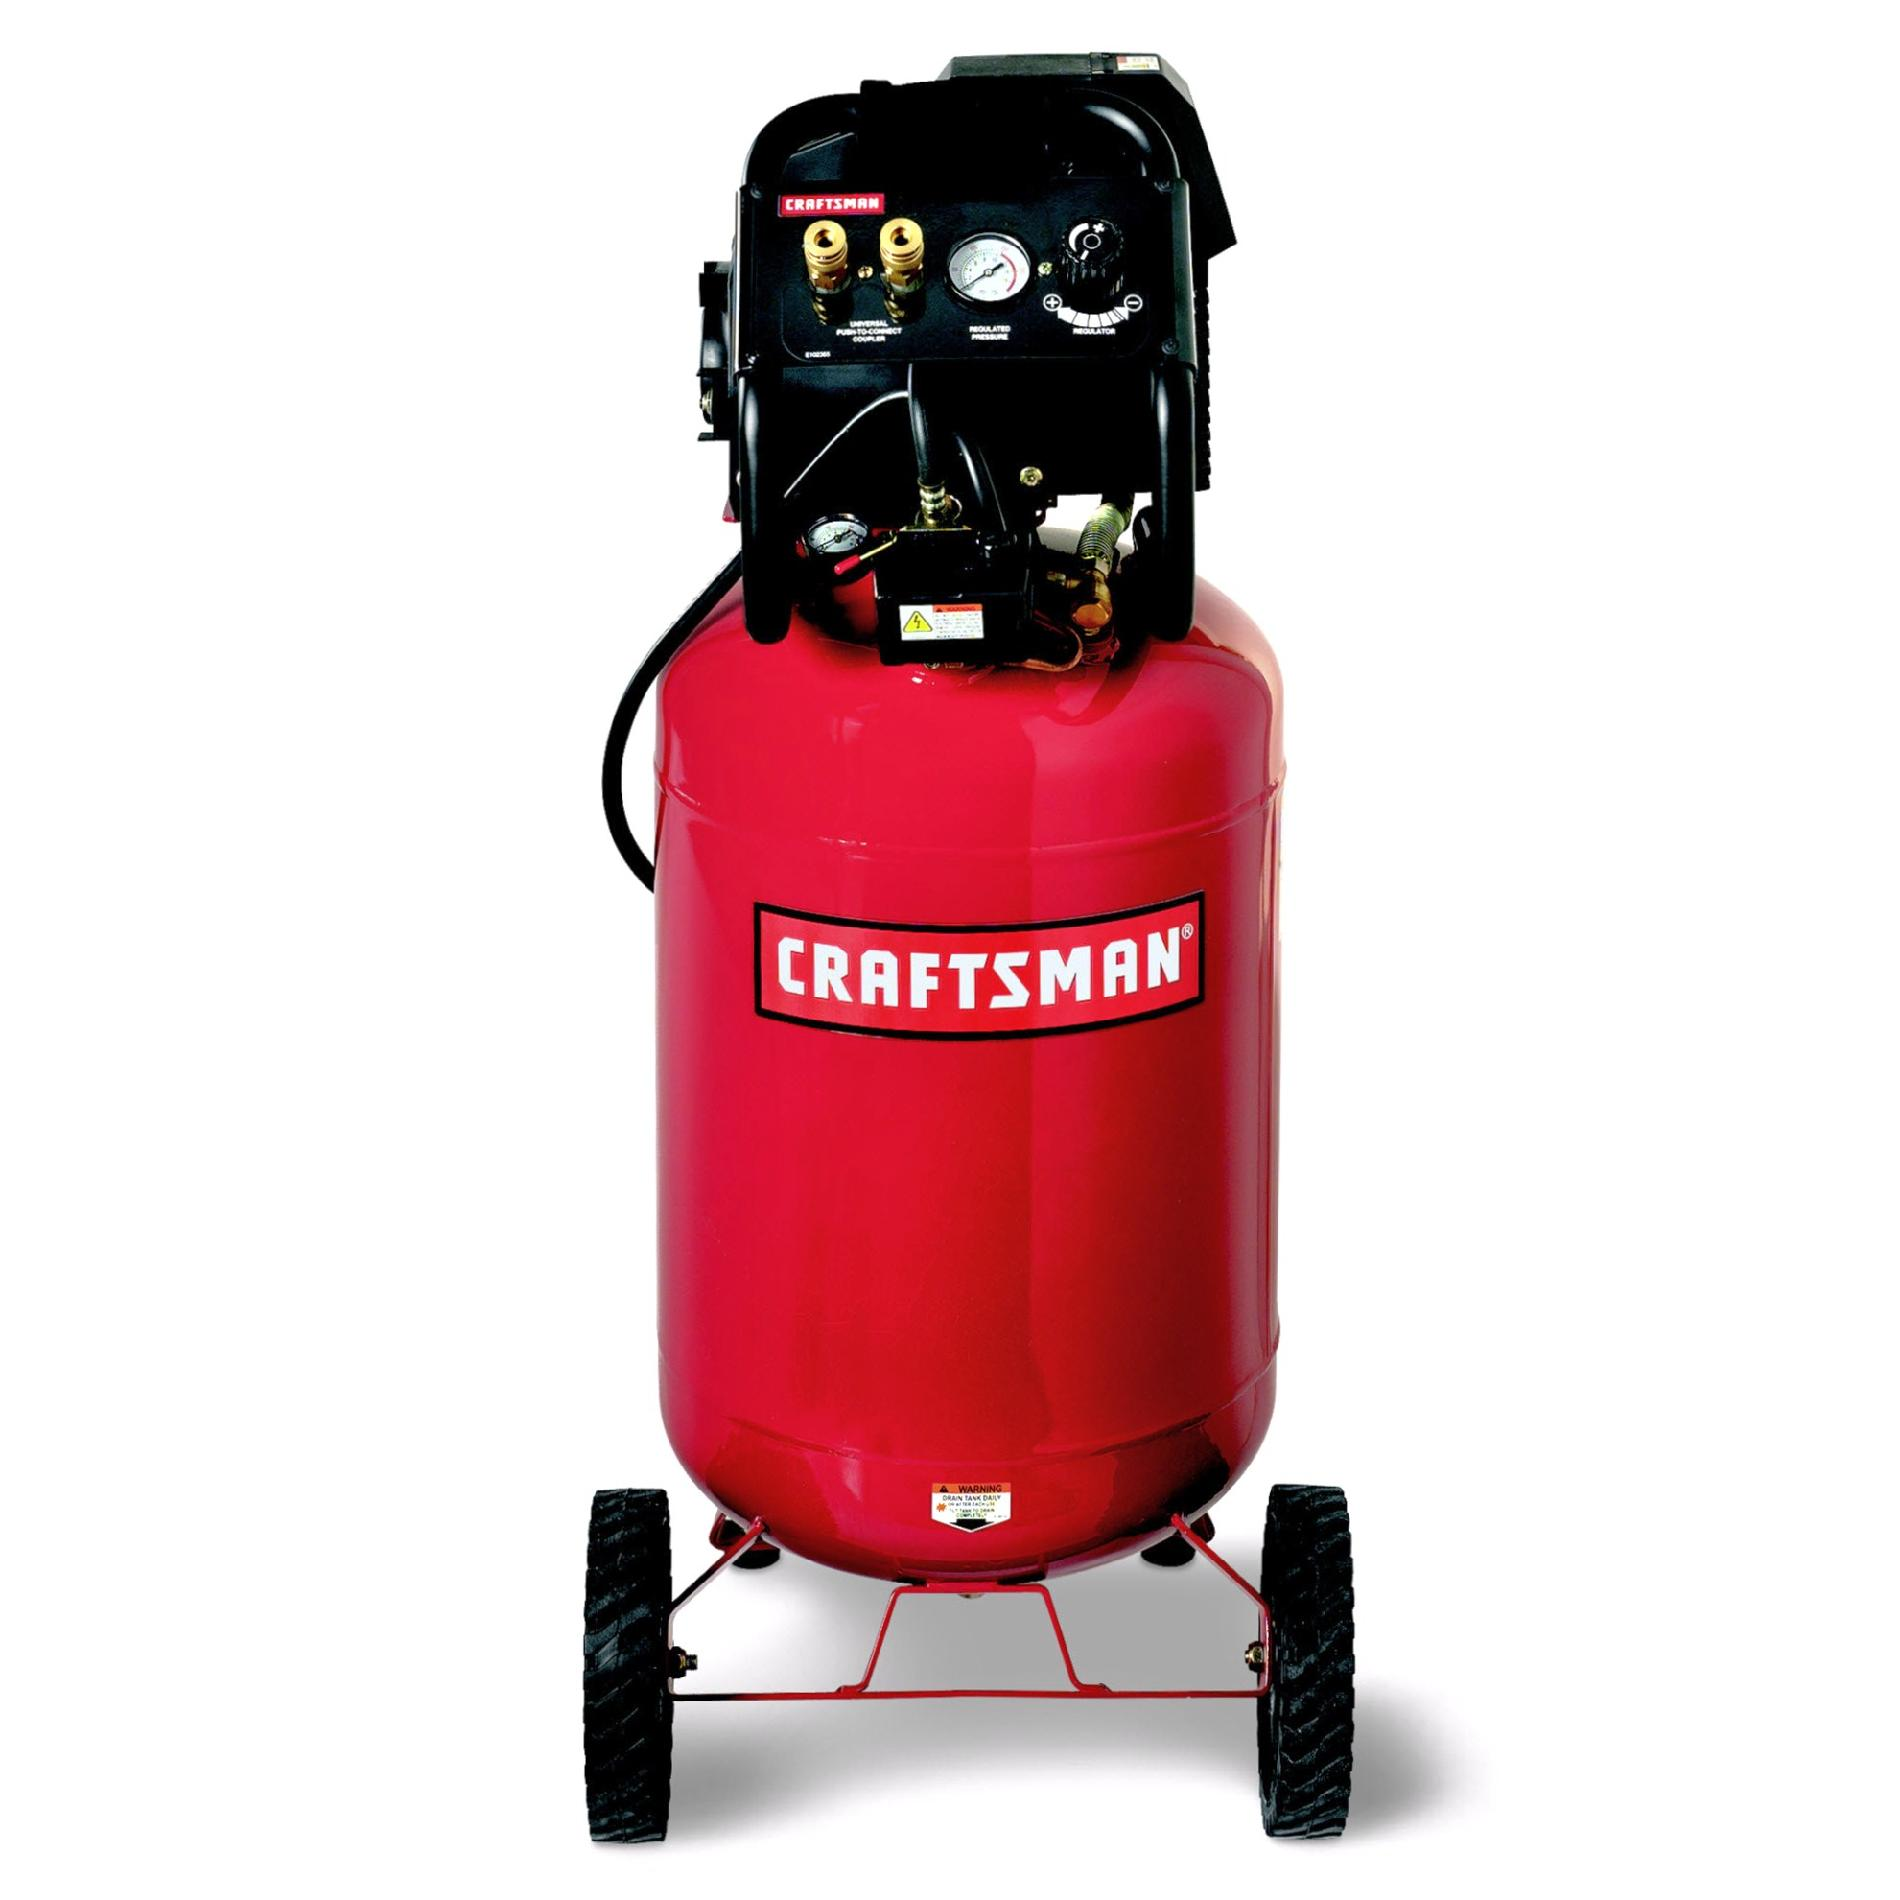 Craftsman 20 Gallon Portable Vertical Air Compressor with Hose and 9PC Accessory Kit